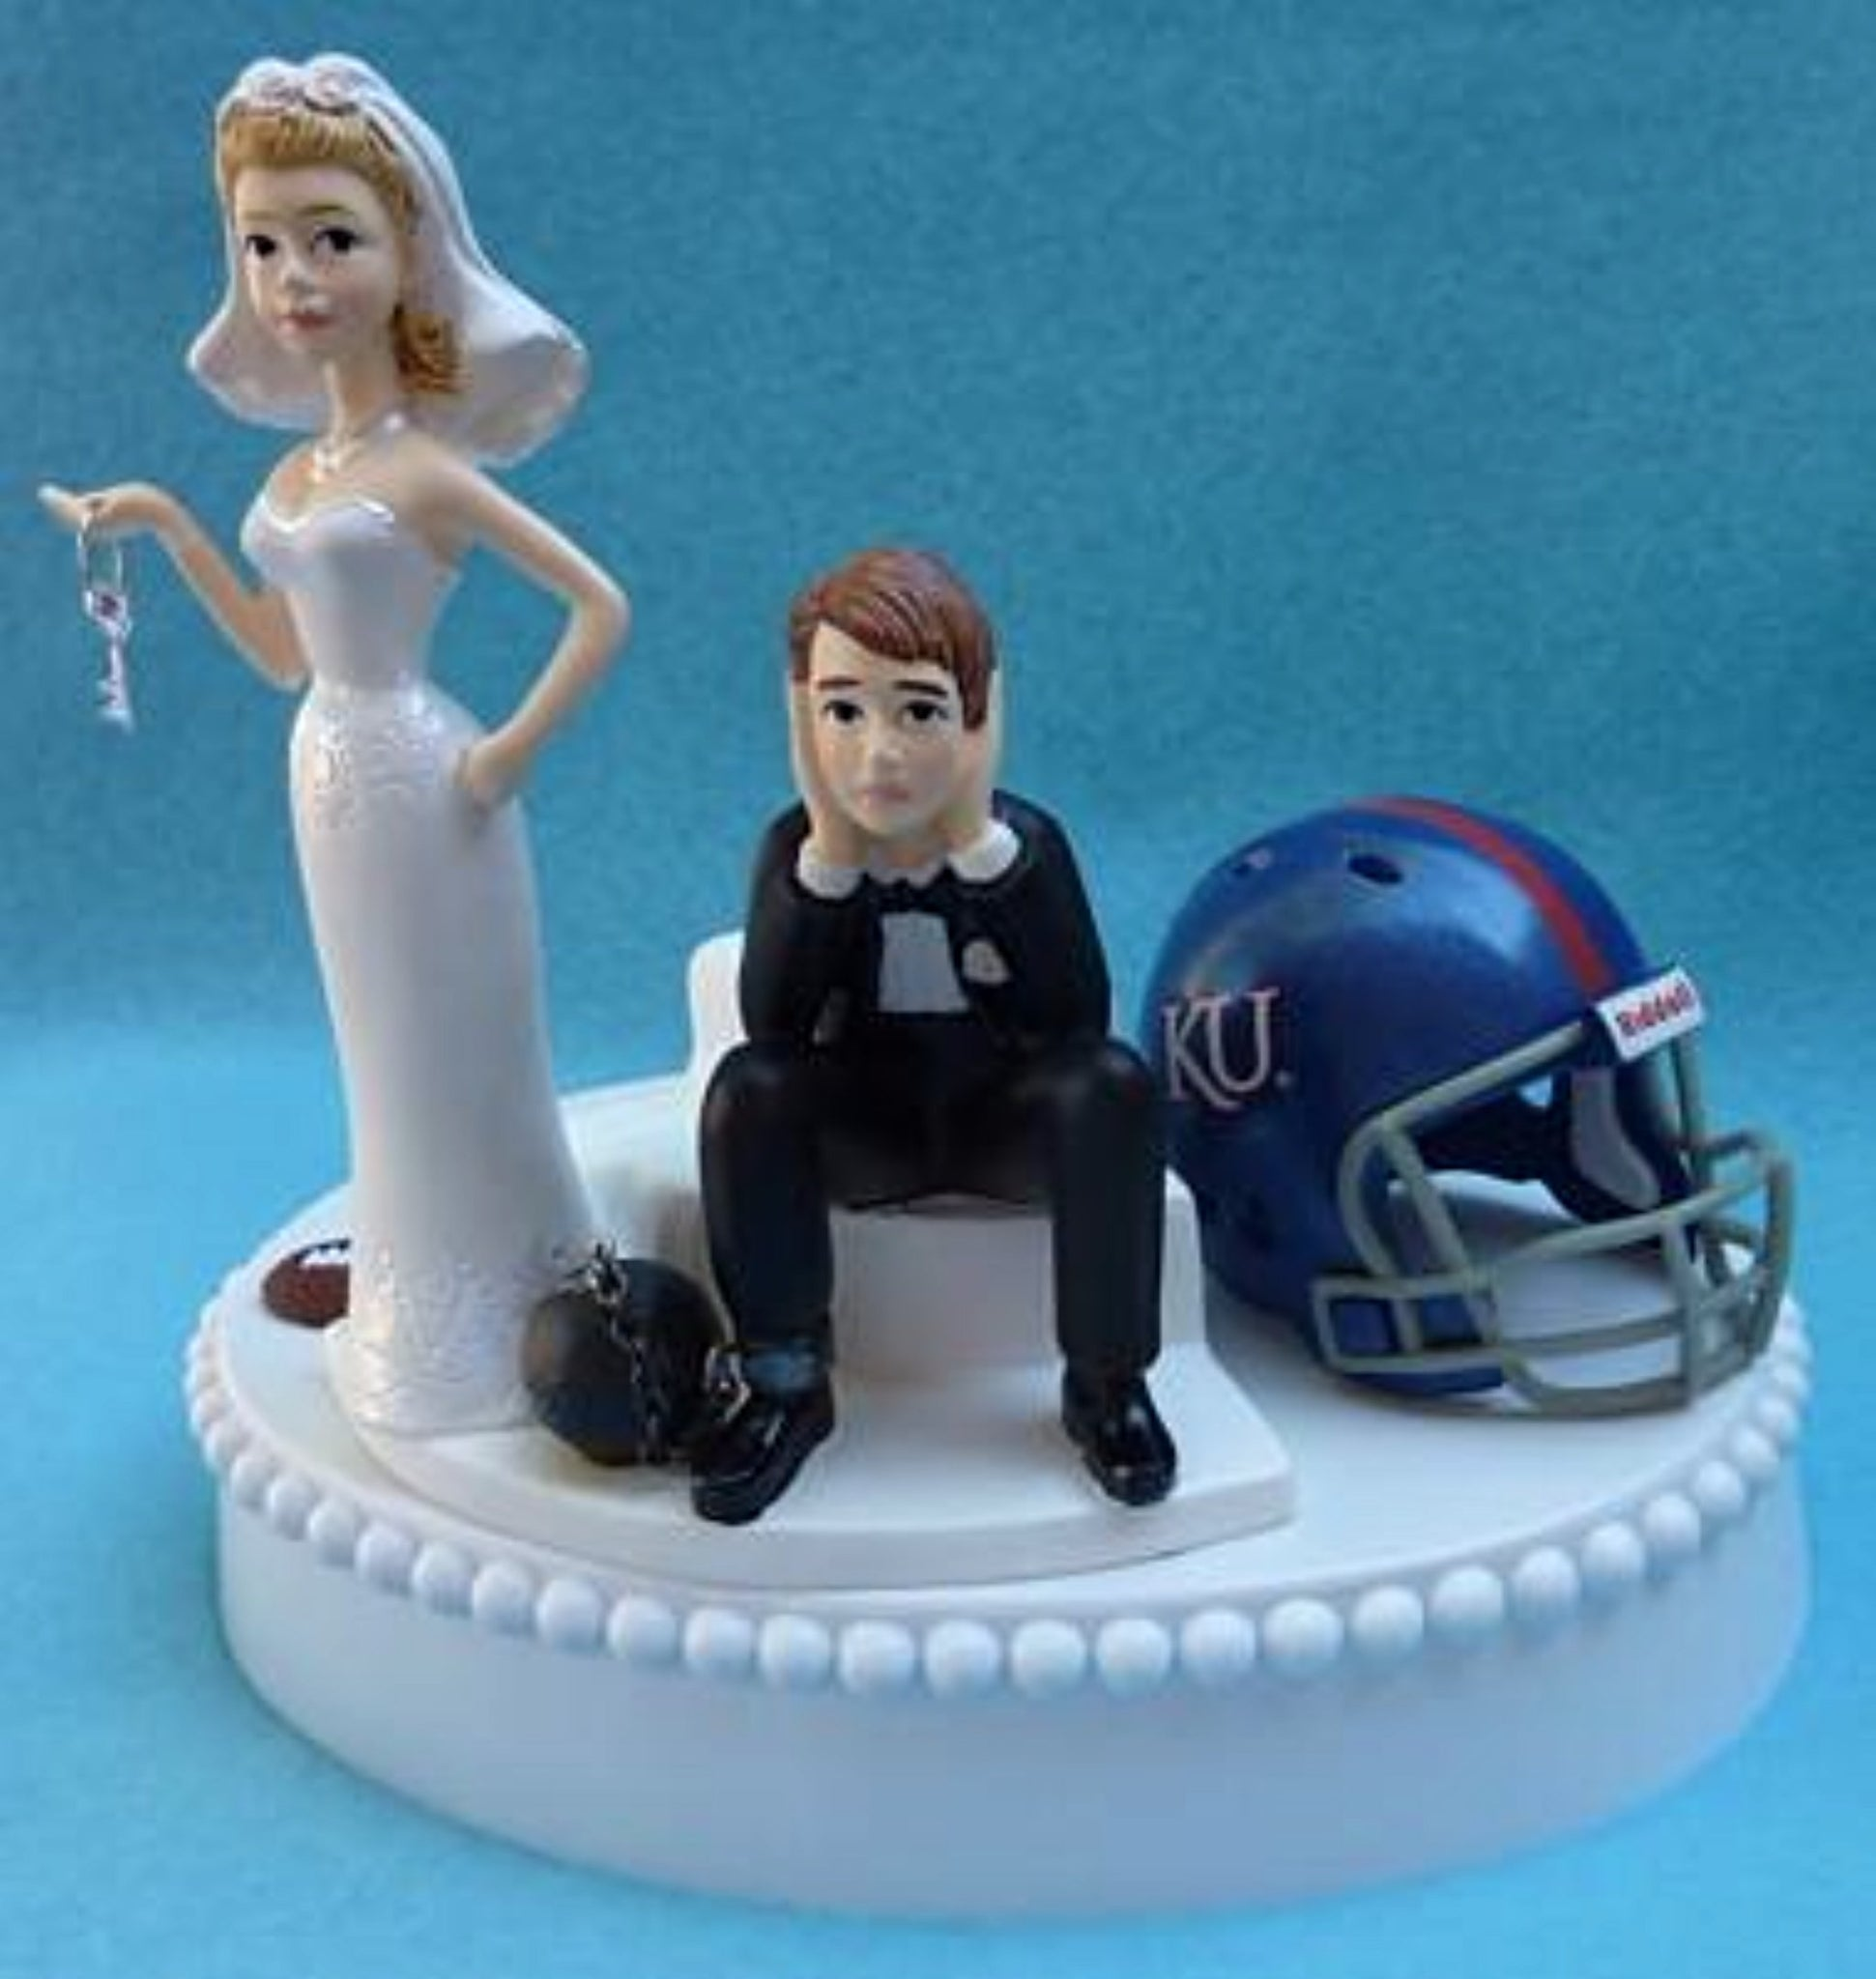 Kansas Jayhawks wedding cake topper University of KU football funny bride sad groom ball chain key humorous Fun Wedding Things